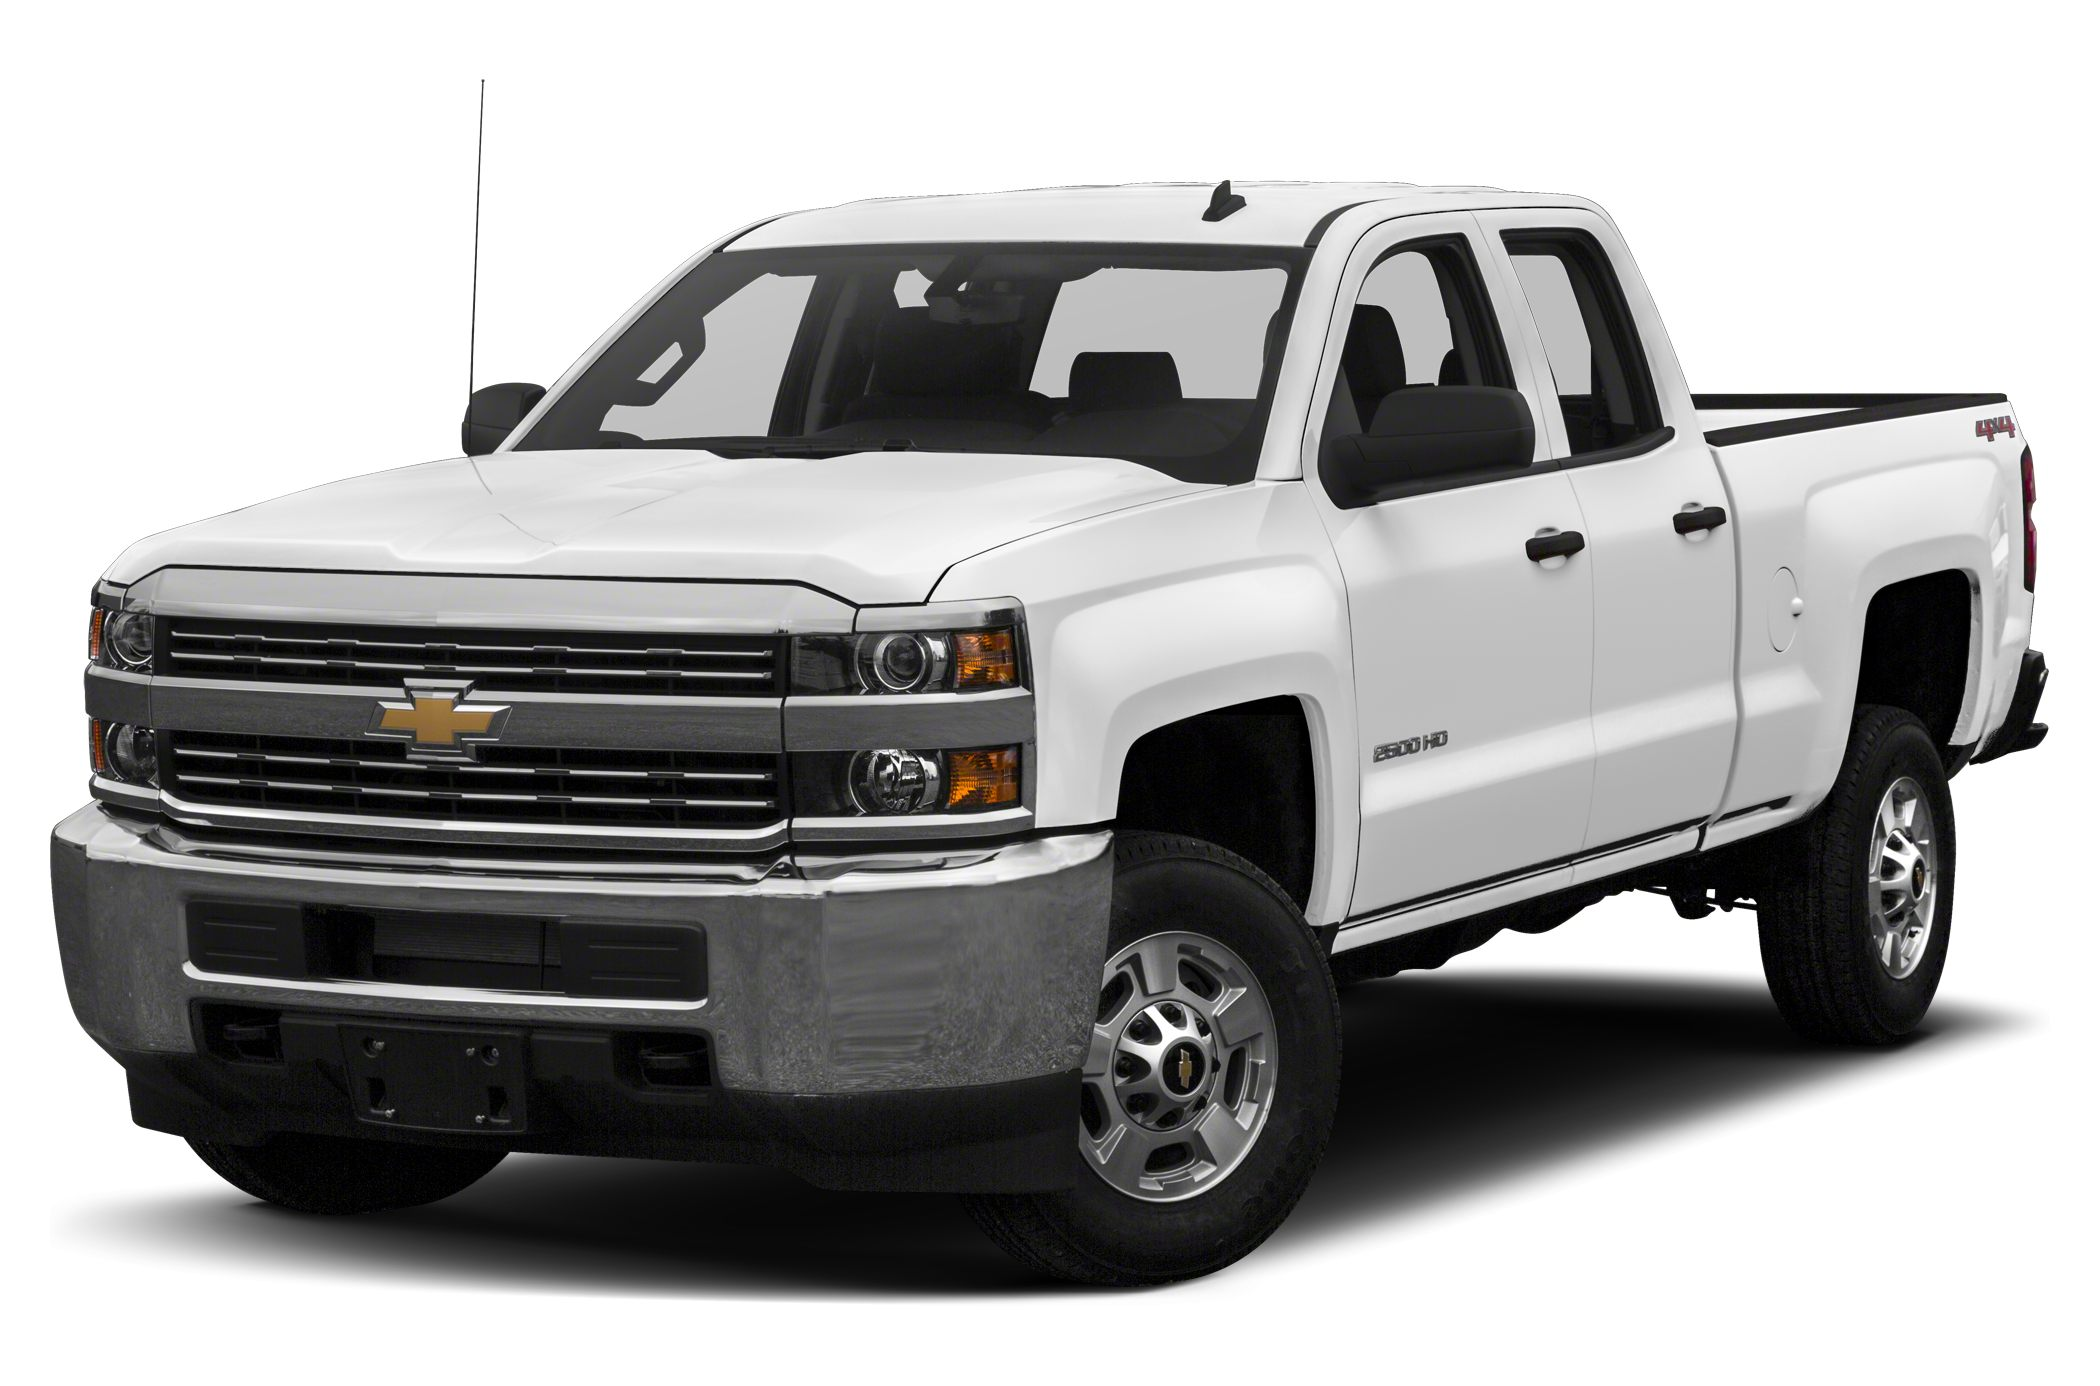 2015 Chevrolet Silverado 2500 LTZ Crew Cab Pickup for sale in Gulfport for $61,880 with 0 miles.